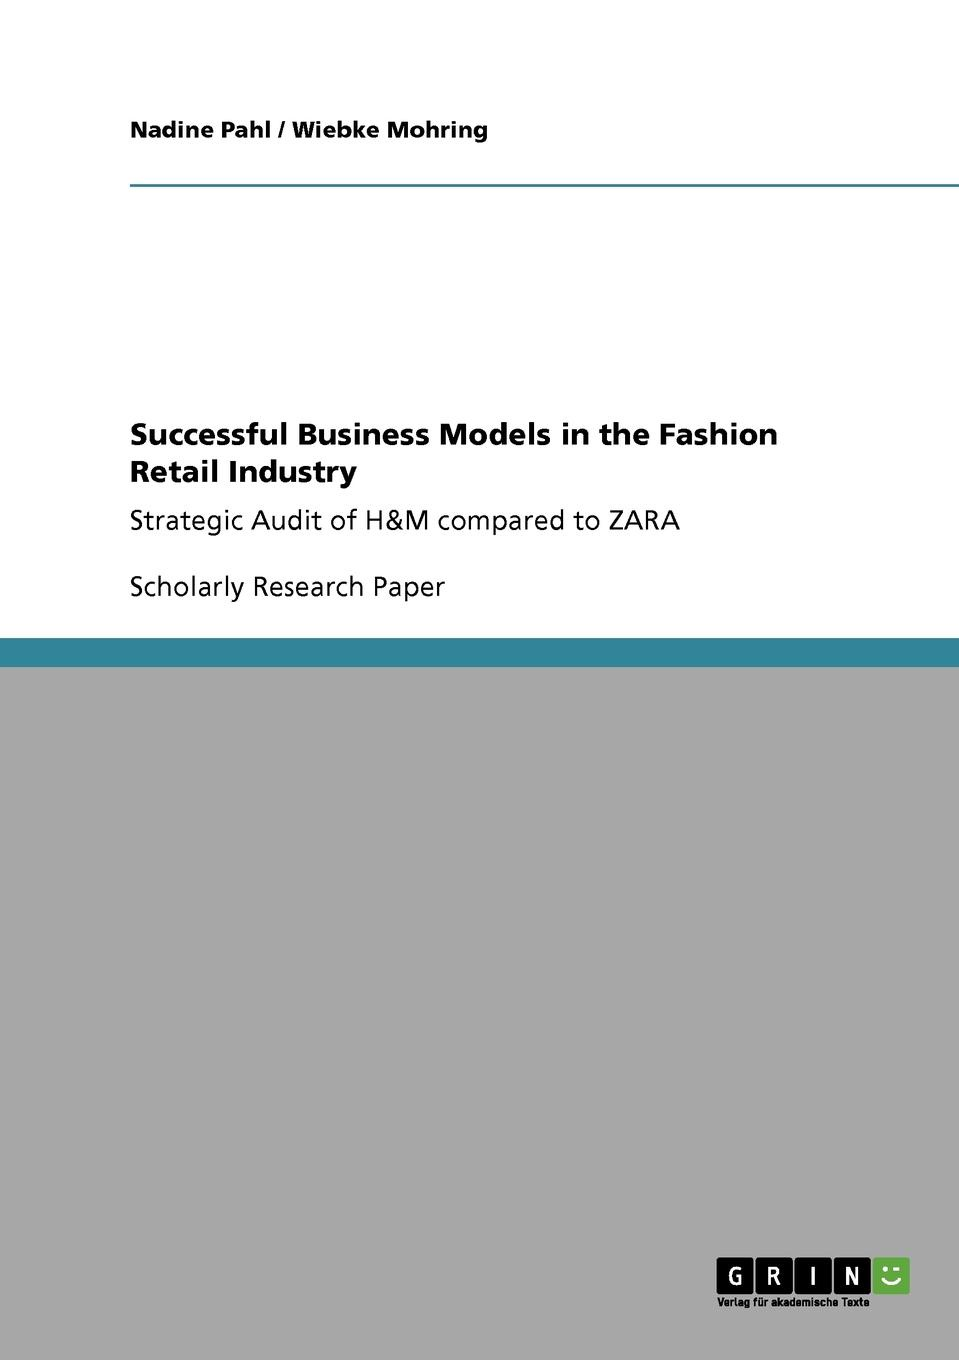 Nadine Pahl, Wiebke Mohring Successful Business Models in the Fashion Retail Industry. Strategic Audit of H.M compared to ZARA weide analong business fashion